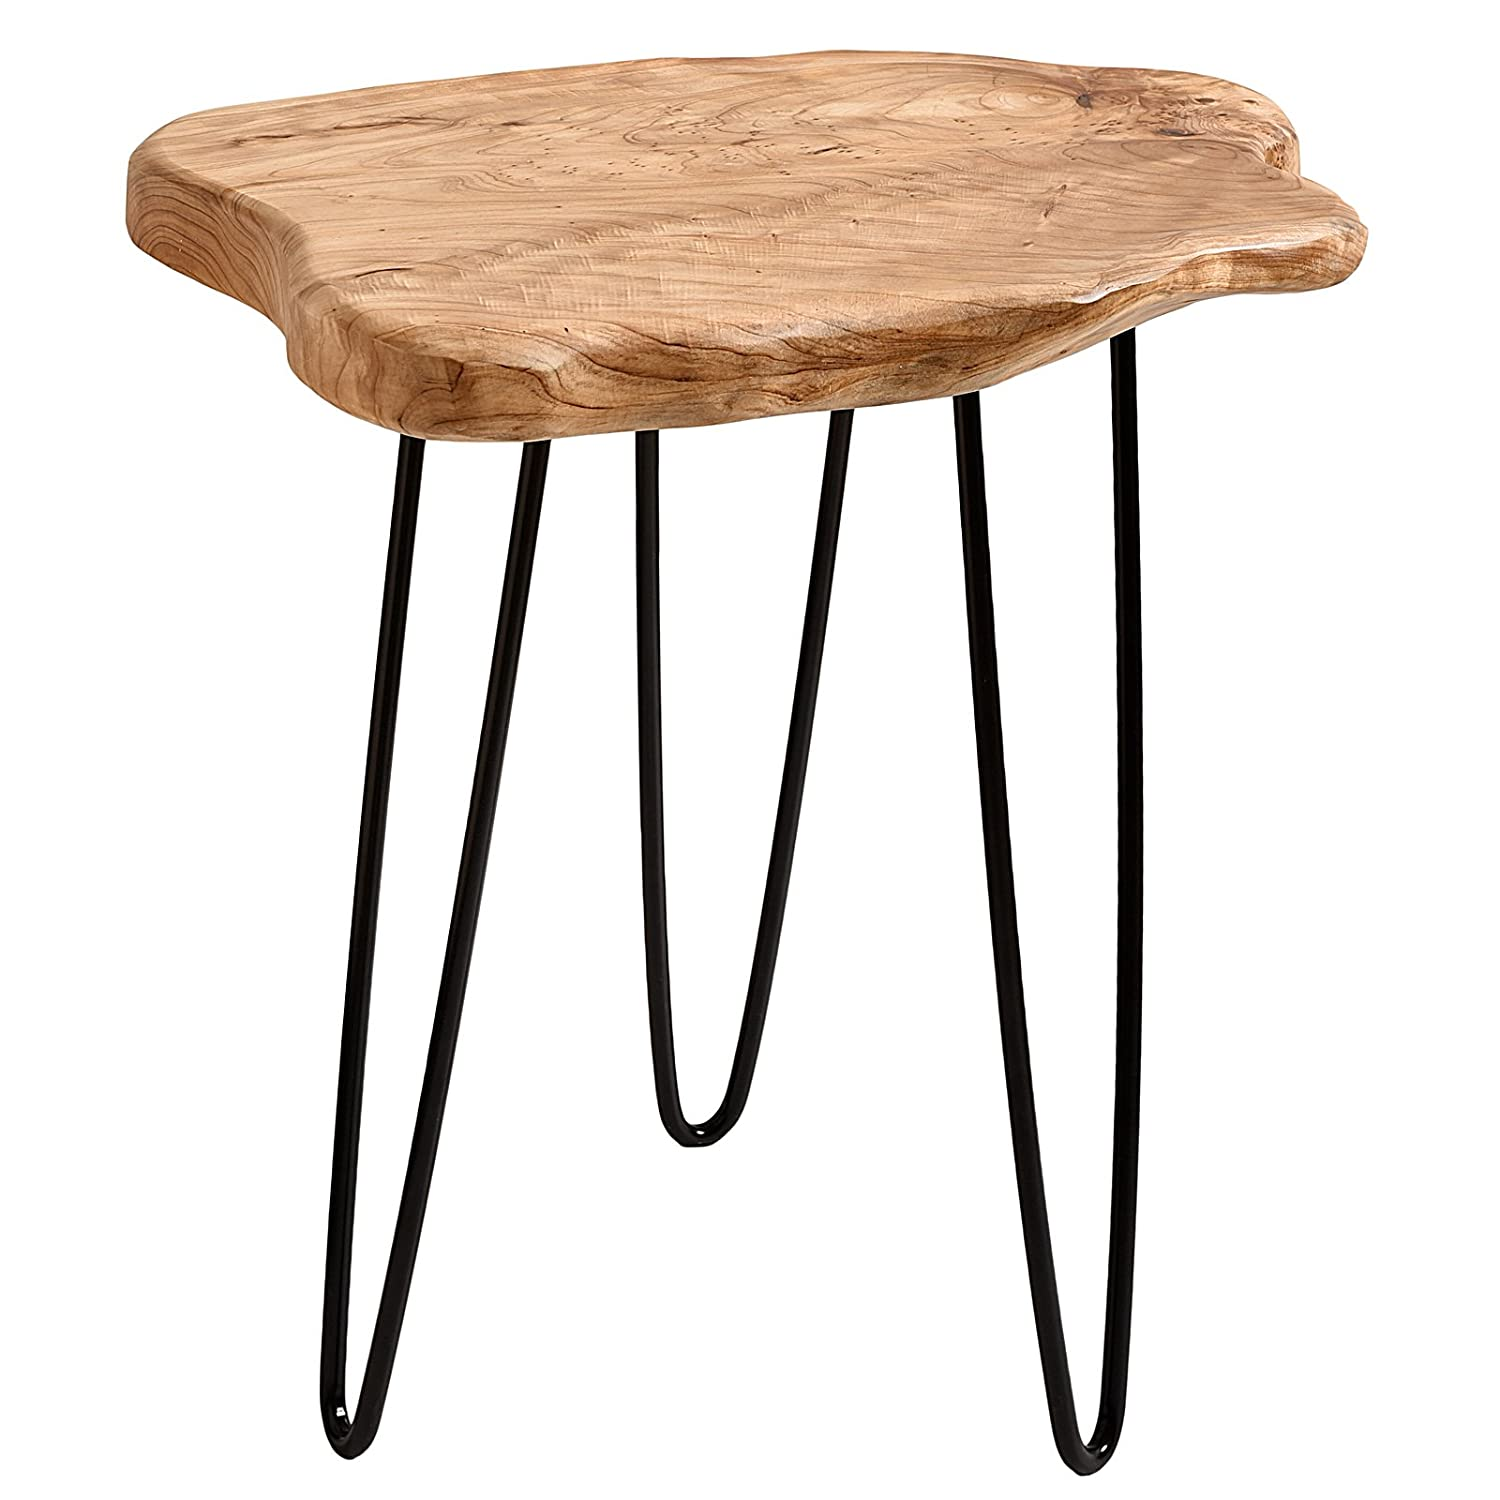 Amazon WELLAND Cedar Wood Stump End Table Rustic Surface Side